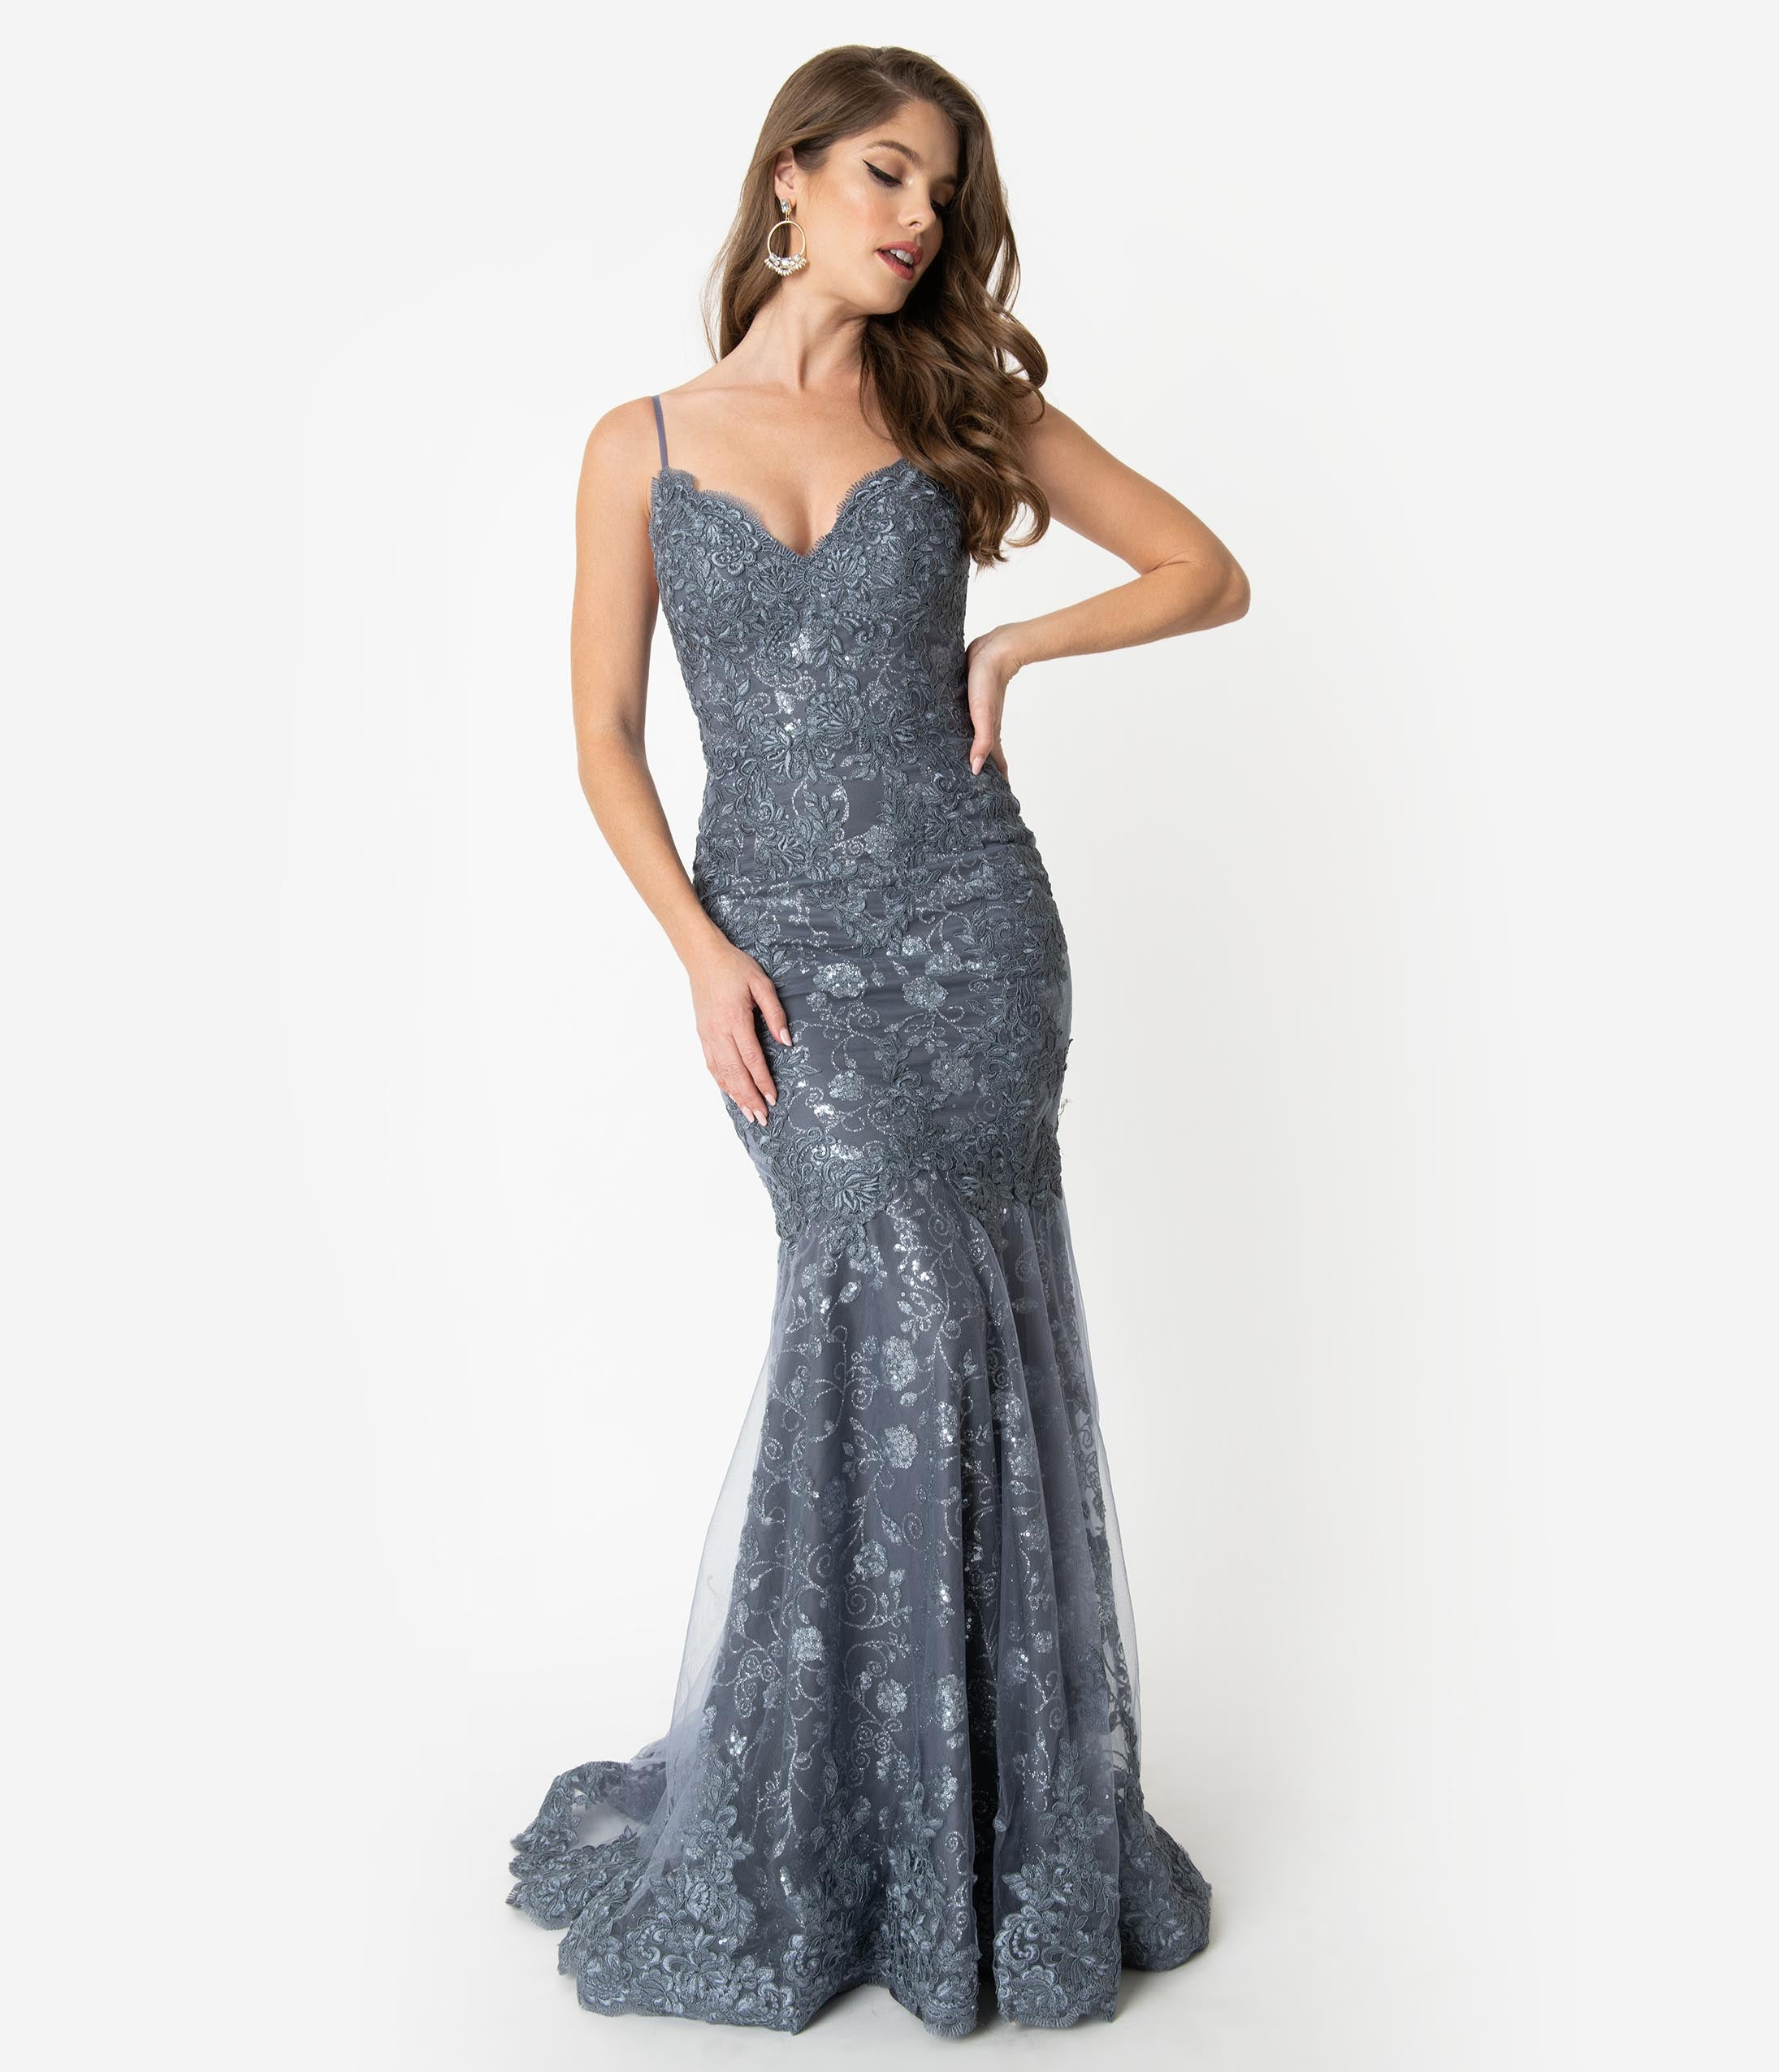 Vintage Evening Dresses and Formal Evening Gowns Smokey Blue Sparkling Sequin Lace Fitted Gown $268.00 AT vintagedancer.com